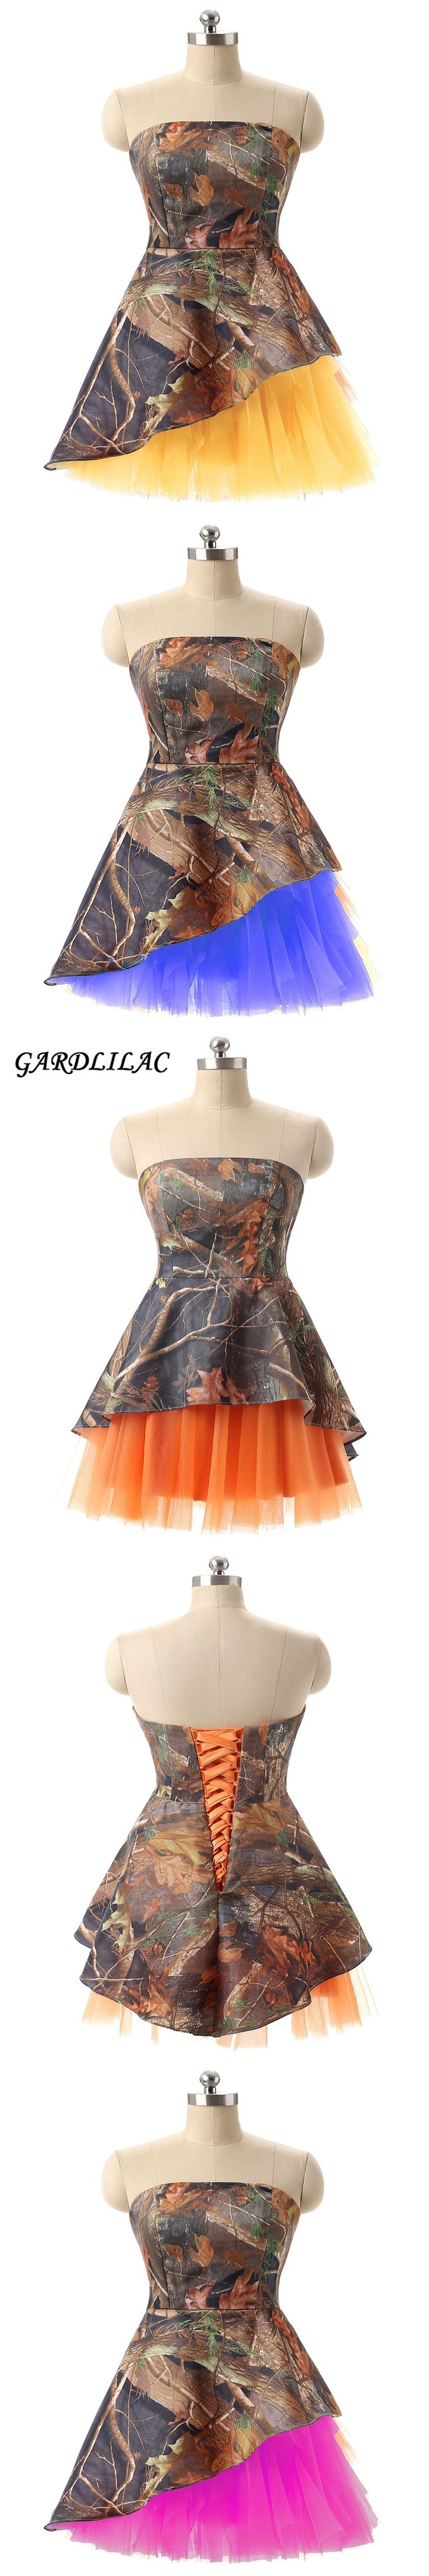 Gardlilac camo Homecoming Dress Strapless Short Homecoming Dress Wedding Party Gown Maid of Honor Camo Prom Dress